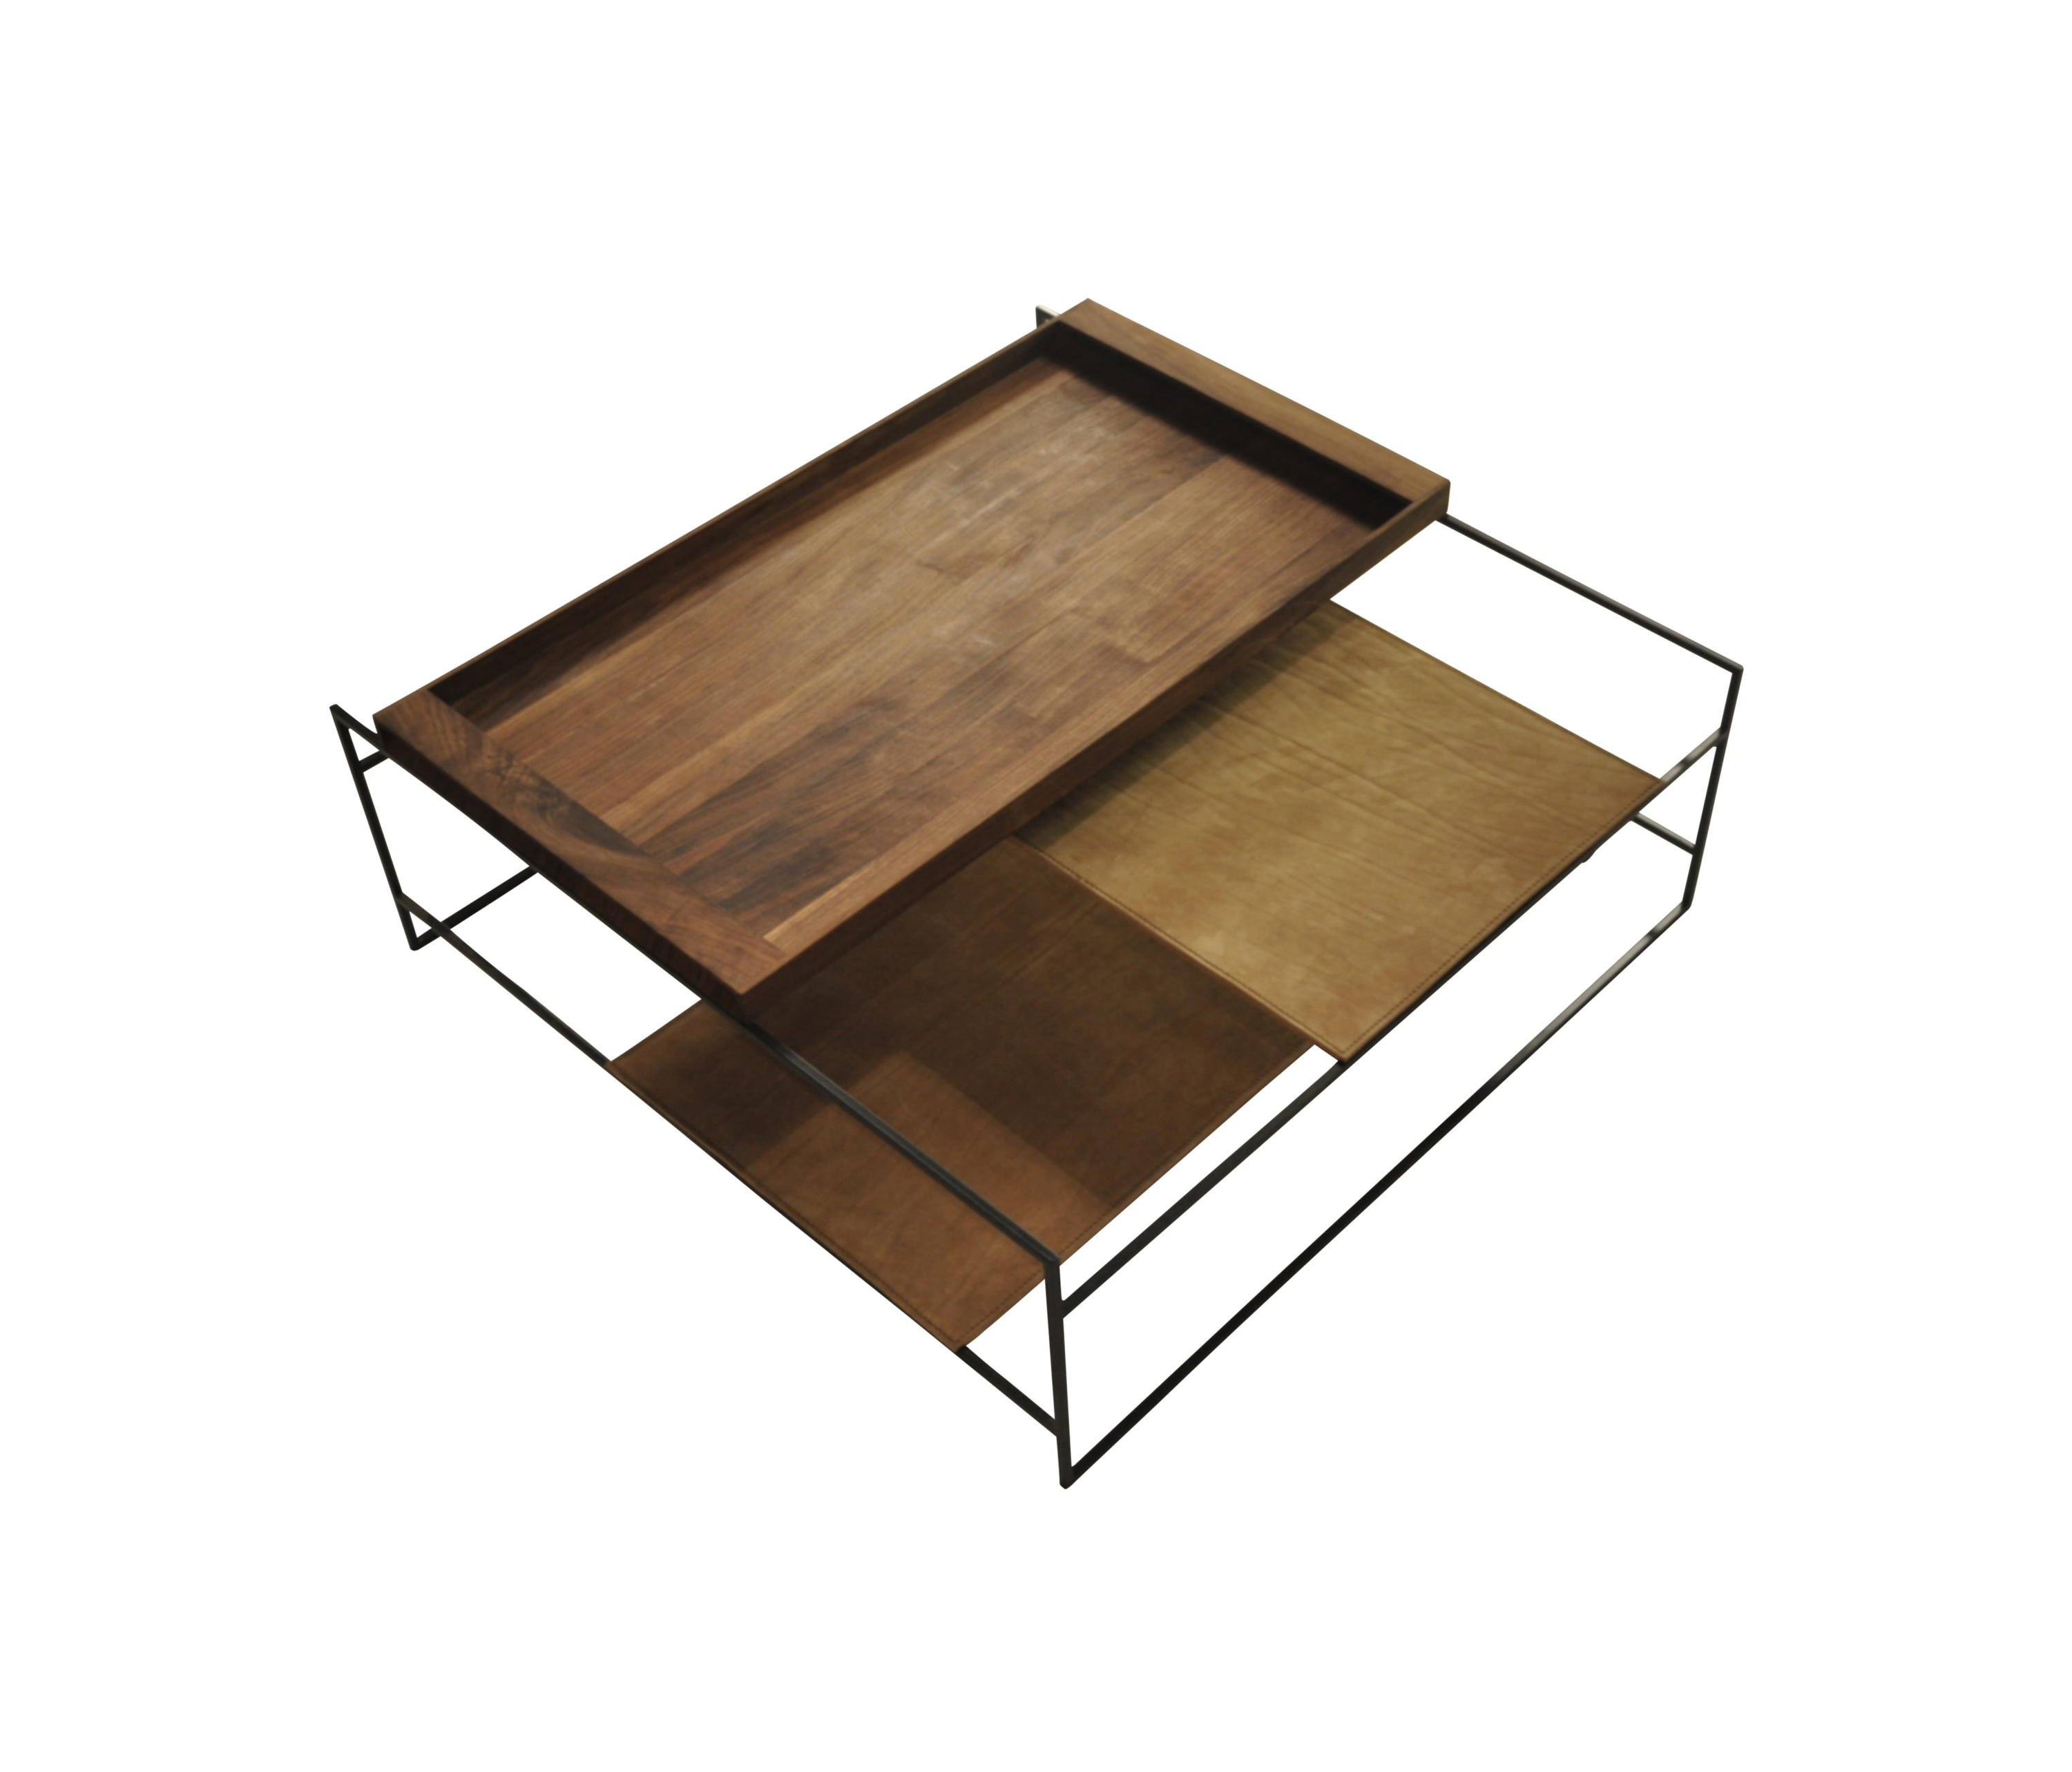 f007 sidetable coffee tables from founded architonic